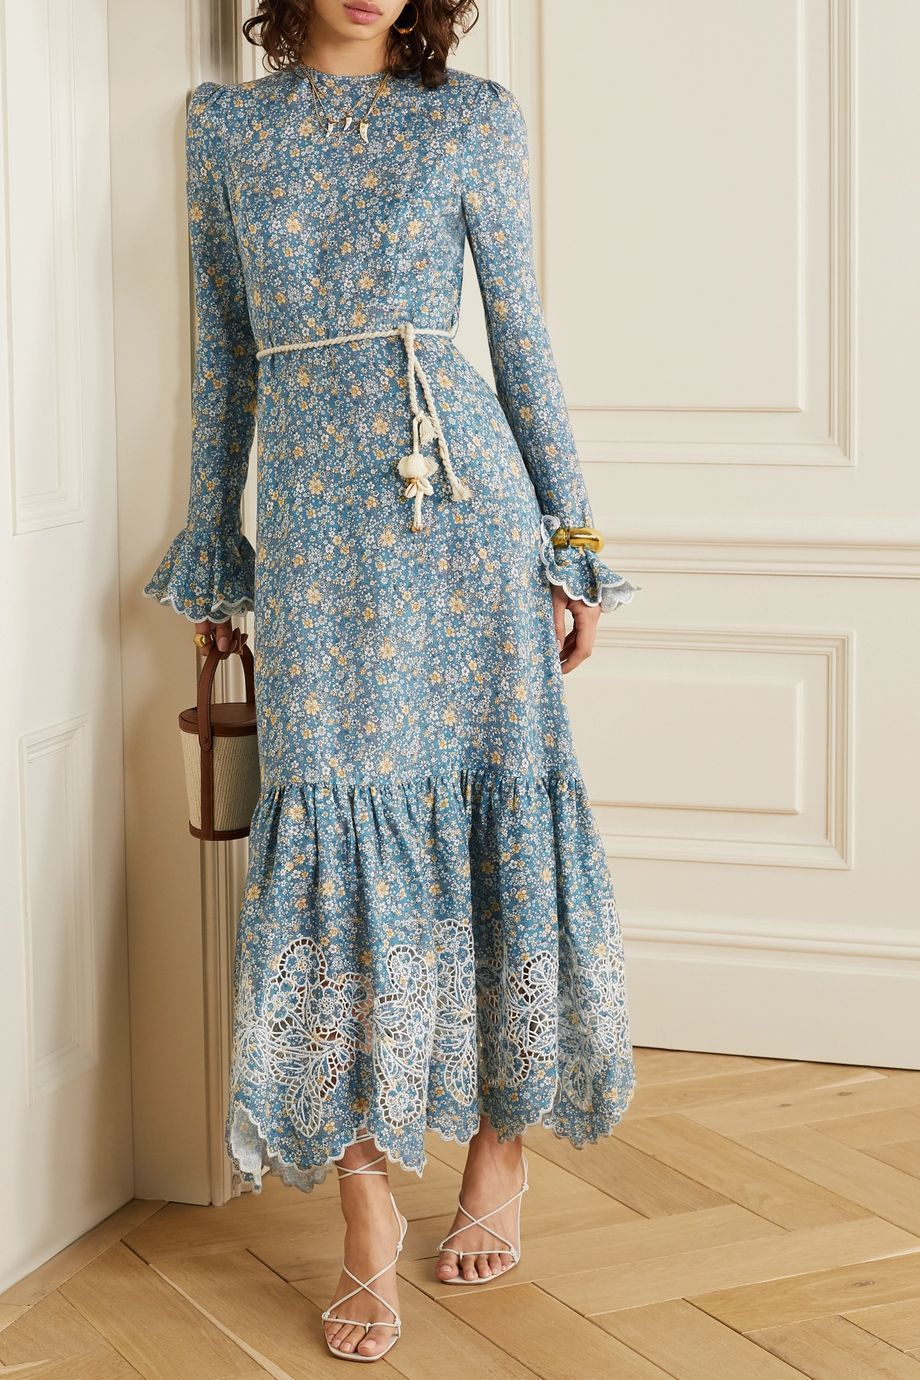 Light Blue Carnaby Belted Broderie Anglaise Trimmed Floral Print Linen Midi Dress Zimmermann In 2020 Linen Maxi Dress Blue Boho Dress Midi Dress